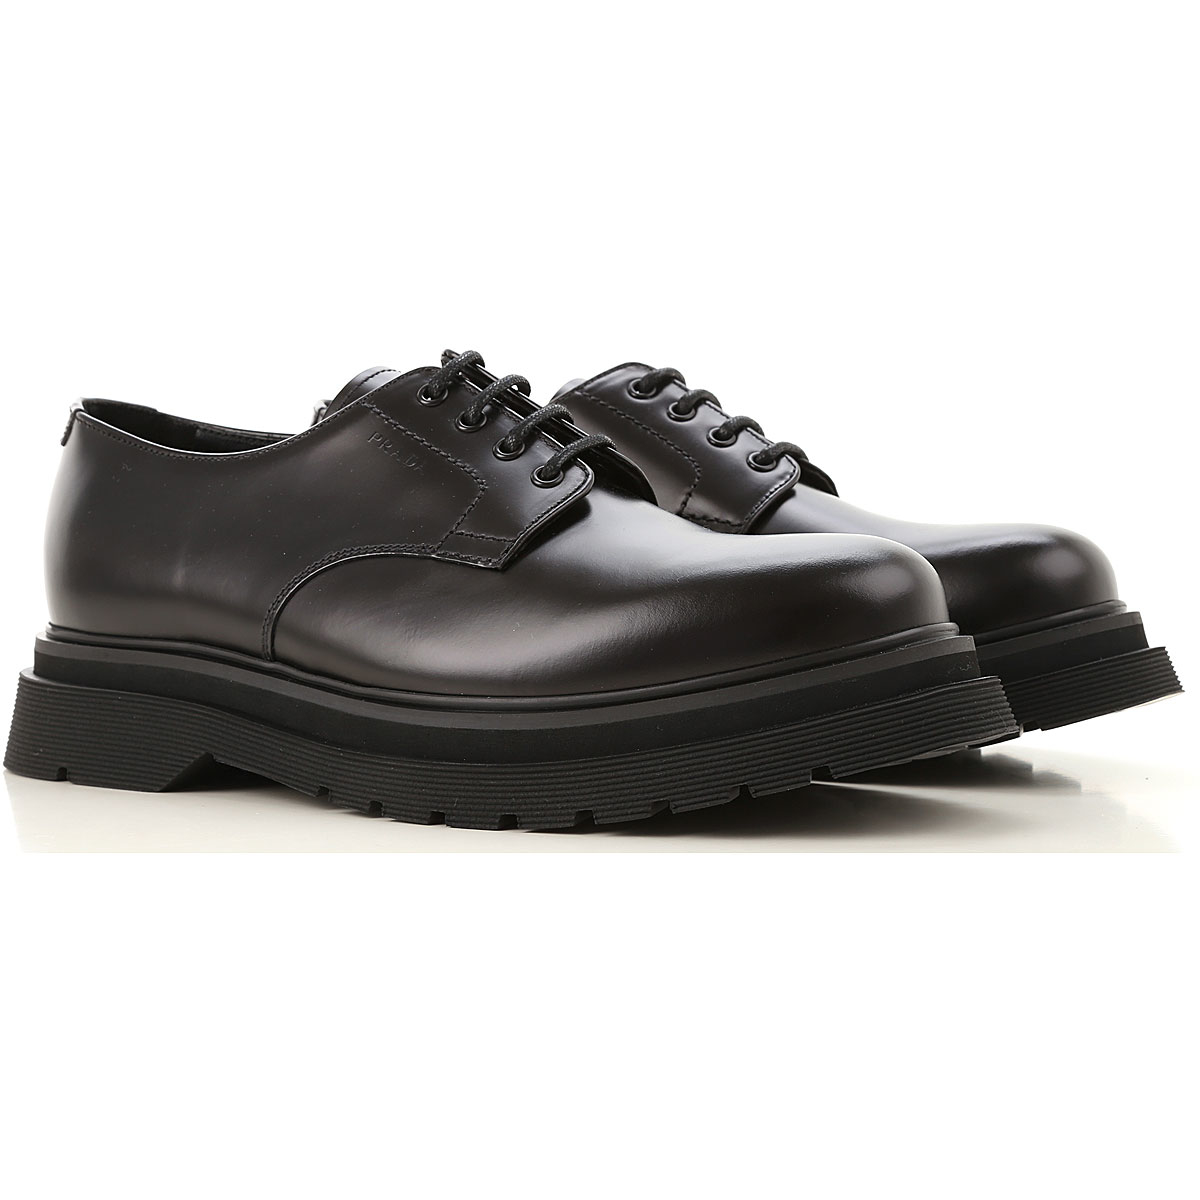 Prada Lace Up Shoes for Men Oxfords Derbies and Brogues Canada - GOOFASH - Mens FORMAL SHOES